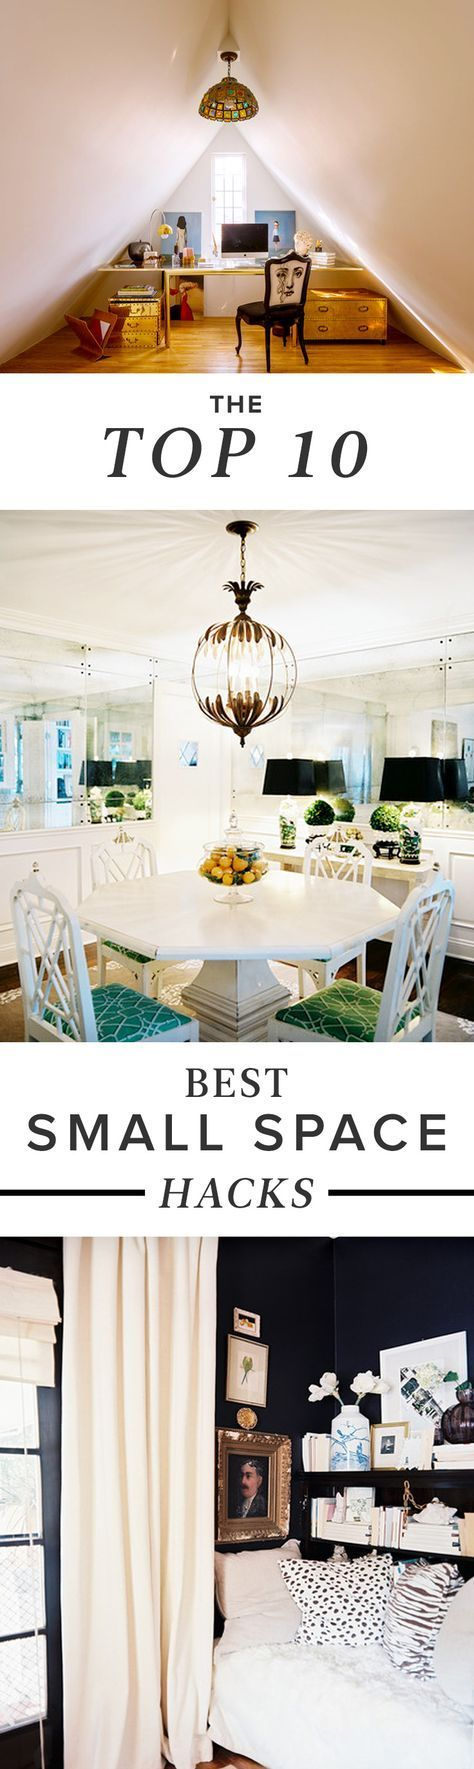 Here we have put together a few pointers to how to take care of your - Best Small Space Hacks Whether You Live In A Five Bedroom Spread In The